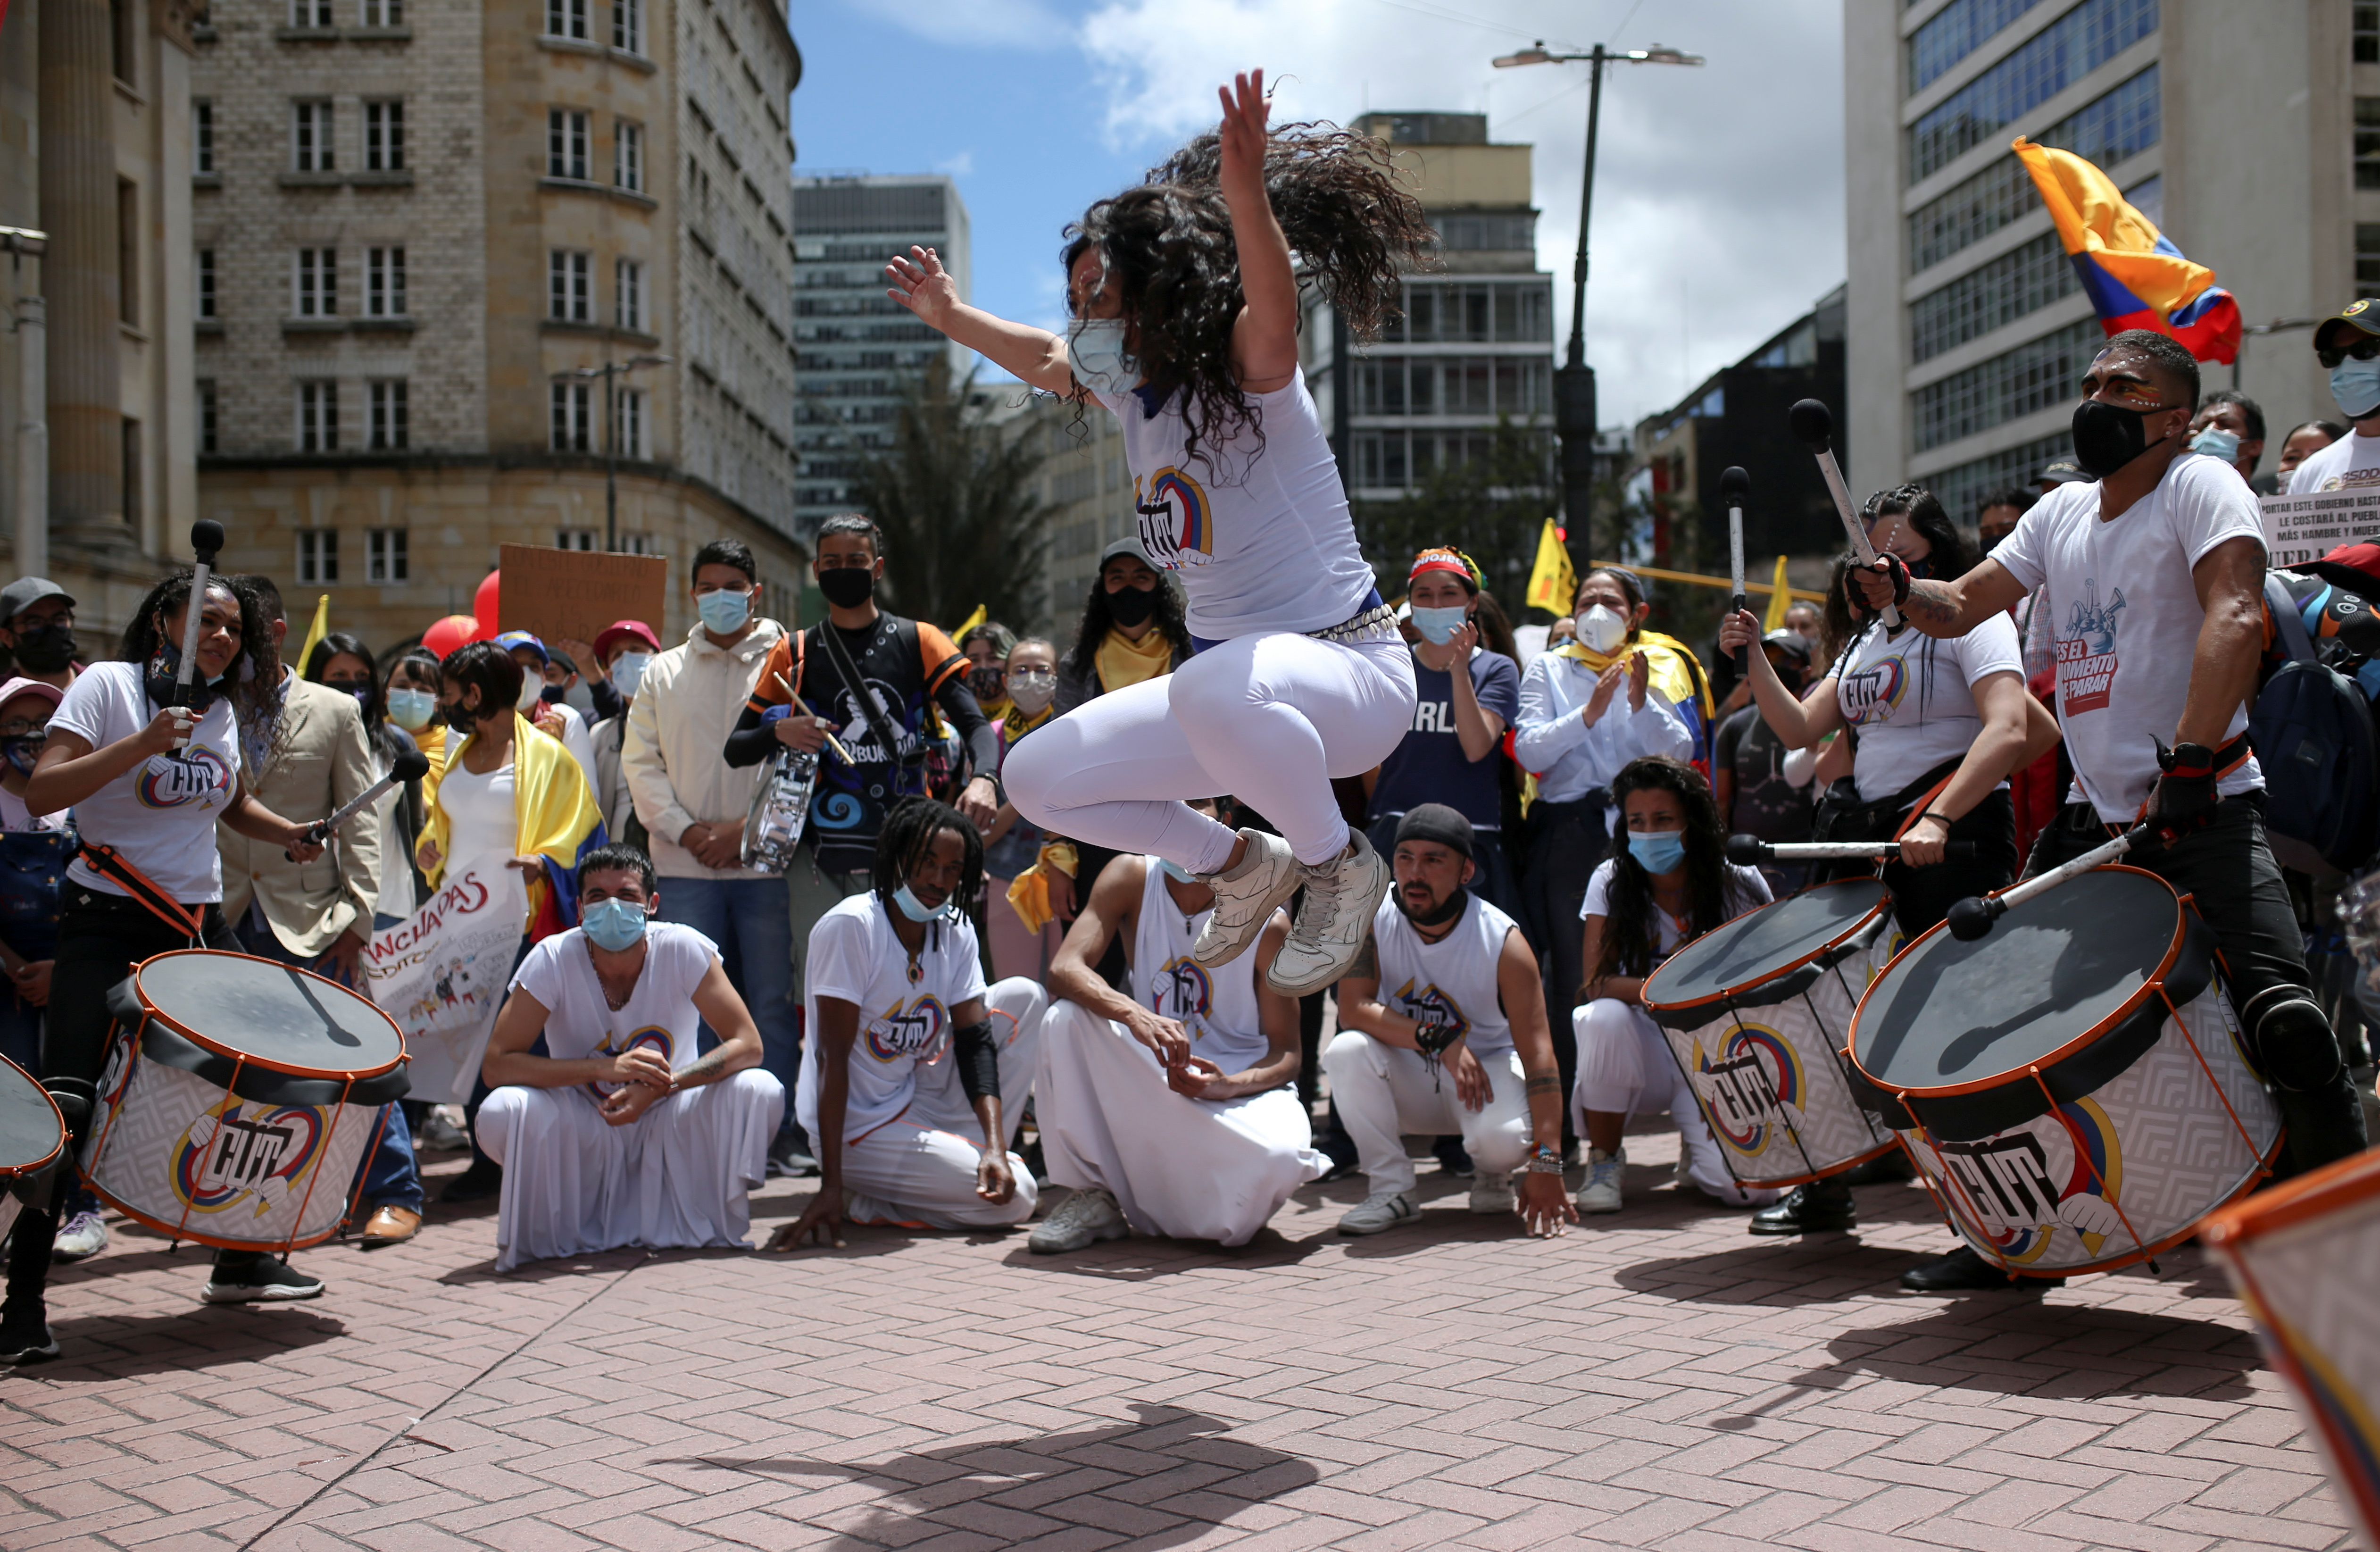 A woman dances as people play drums during a protest demanding government action to tackle poverty, police violence and inequalities in healthcare and education systems, in Bogota, Colombia May 26, 2021. REUTERS/Luisa Gonzalez